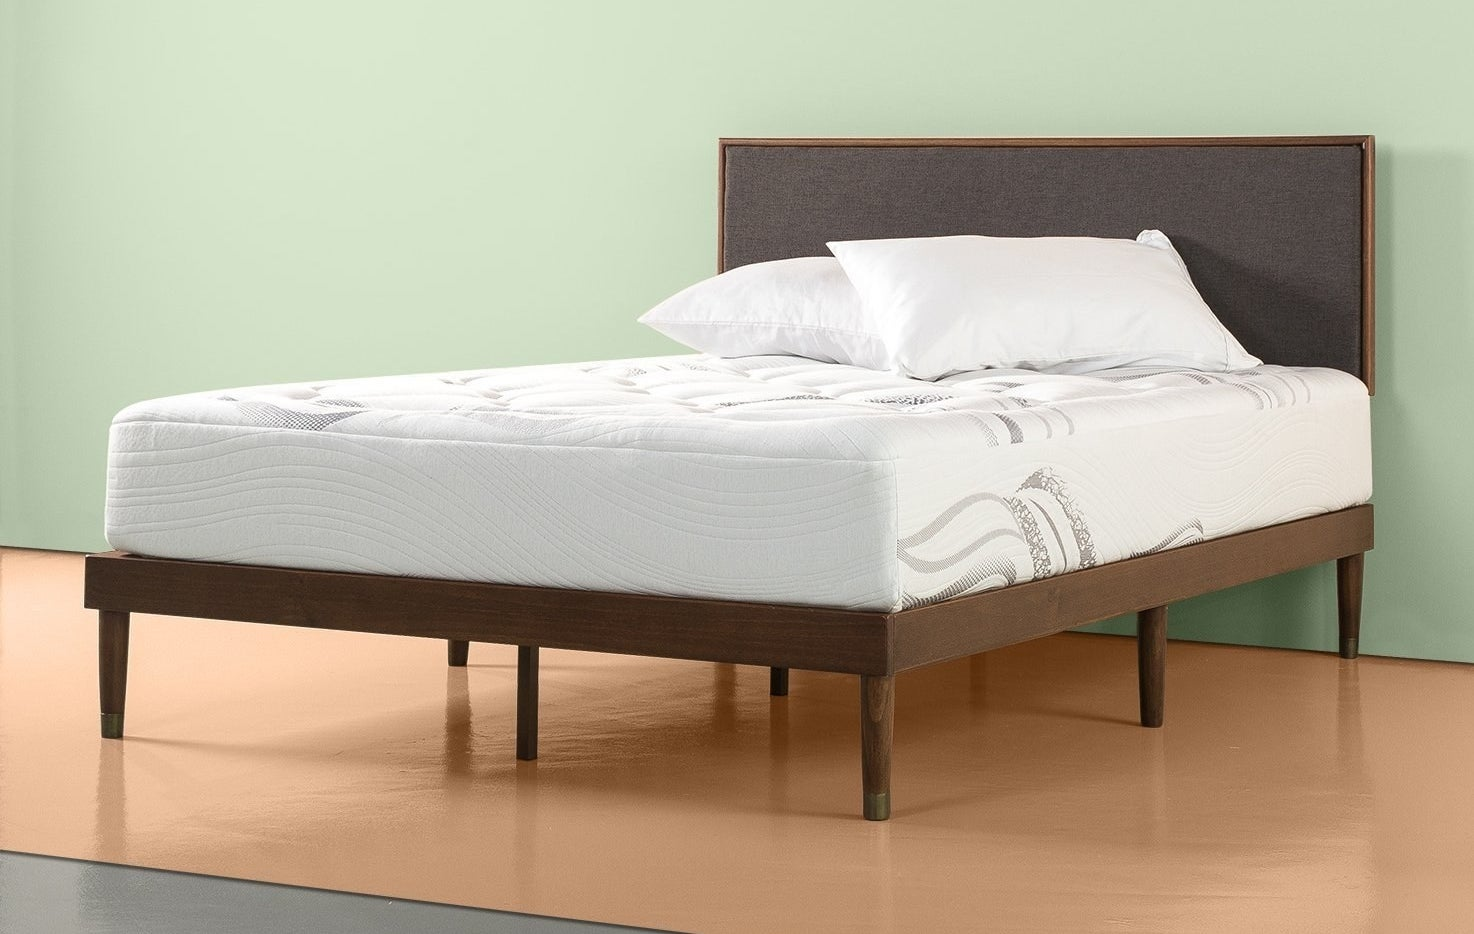 "Promising review: ""Your search for the perfect bed ends here! I love the marshmallow cloud that loves me and will not hurt me lol!! I was seriously nervous about purchasing a mattress and even more so about doing so online. I am completely in love with this bed. It came fast and in double bags and a box so it was nice and clean/ easy to slide around. It's perfectly firm and fluffy. It looks and feels beautiful, very soft, not cheap at all, and has no odor. I do not see how traditional mattress companies can stay in business with an affordable and wonderful product such as this. It's literally like a mini luxury vacation every time I go to bed. No back pain and less waking up at night too. I was however surprised at how deep of sleep I was getting, dreams, and just hard to wake up. I'm usually a morning person/ light sleeper but now I desperately want to hit the snooze and take siesta, every day. My husband and I are between 220–250 each and this bed completely supports us without sagging like some beds I tried out in person. And, it's great that there is no motion transfer. I don't even wake him up rolling over or getting up. Great product and great price. Why are you still reading? Buy one and get your pjs on! It will change your life!"" —Ana S. Price: $163.69+ (available in 3 heights and four sizes)"